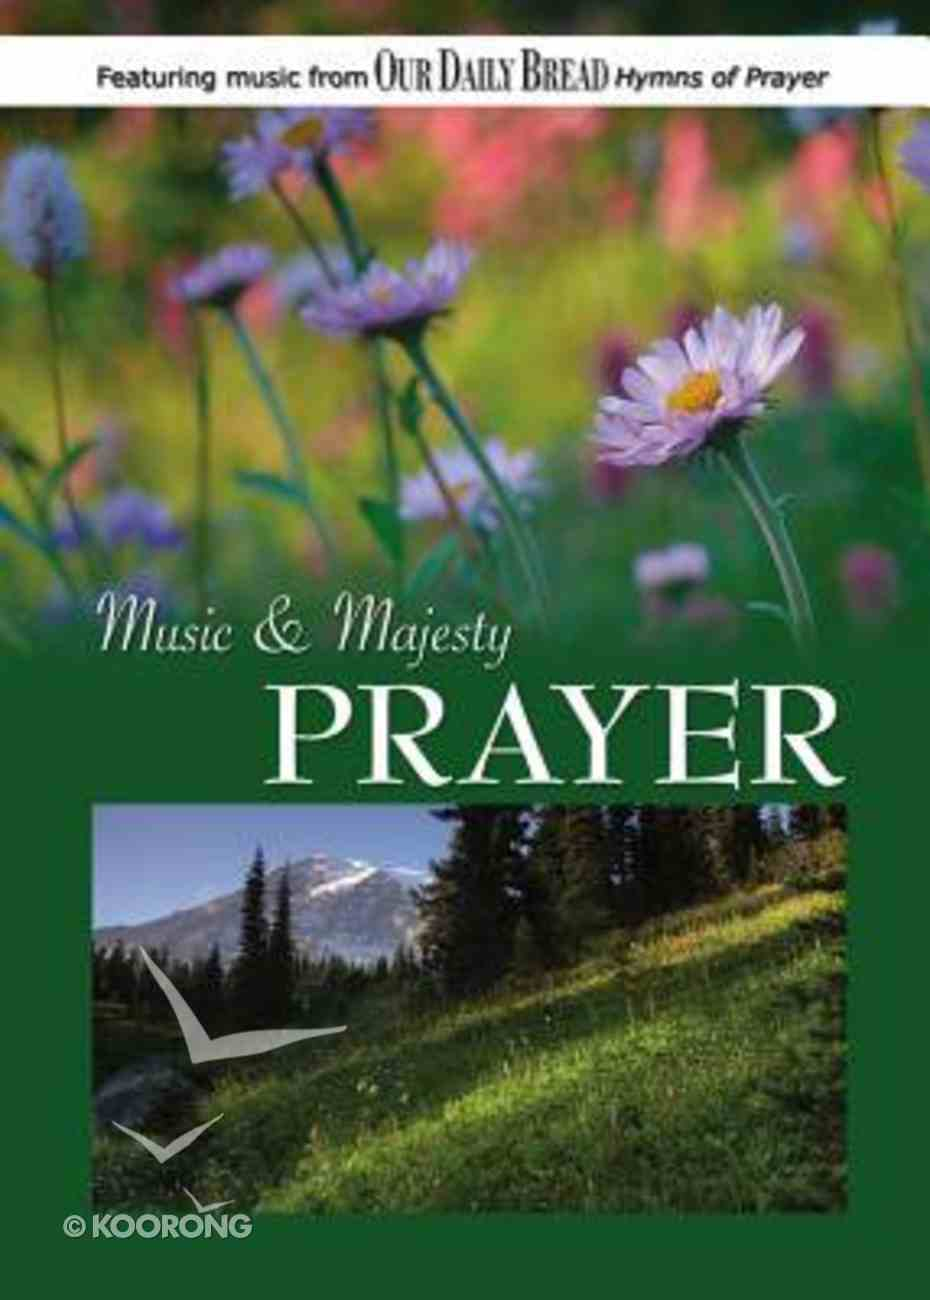 Music & Majesty #03: Prayer (Our Daily Bread Series) DVD